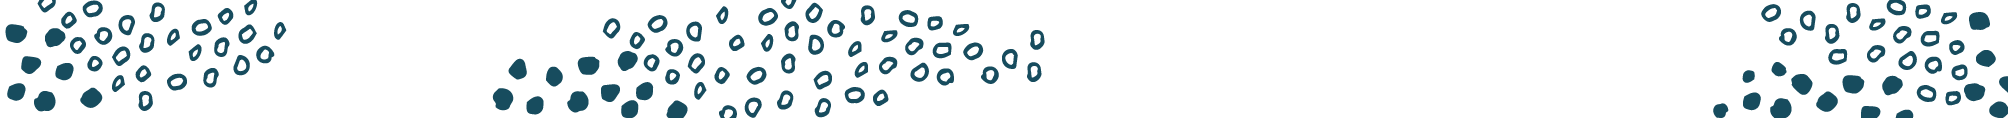 Dot Stitches-01.png